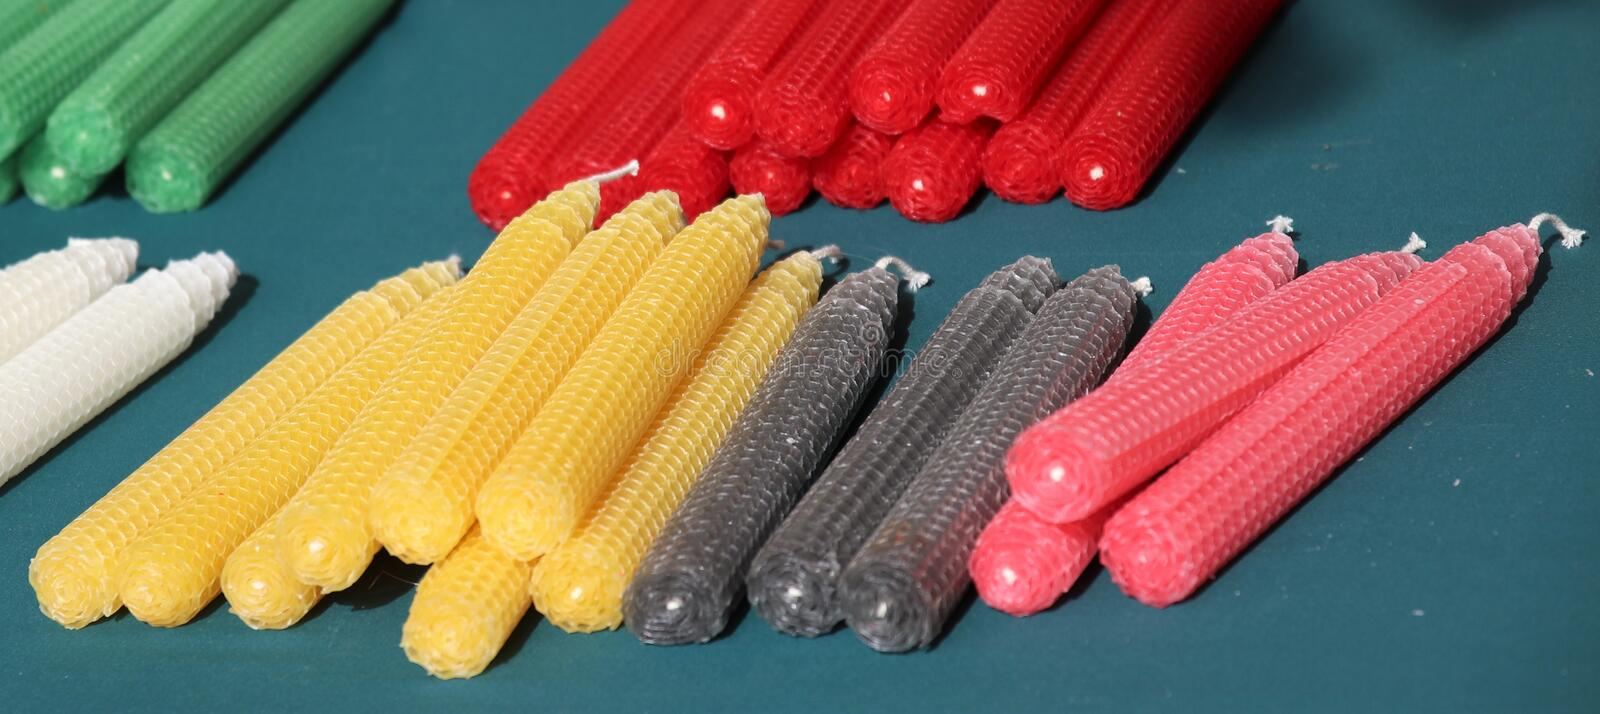 Colorful beeswax candles in a row. Colorful beeswax candles on a blue cloth. Candles are pink, gray, yellow, white and green. Selective focus royalty free stock photography